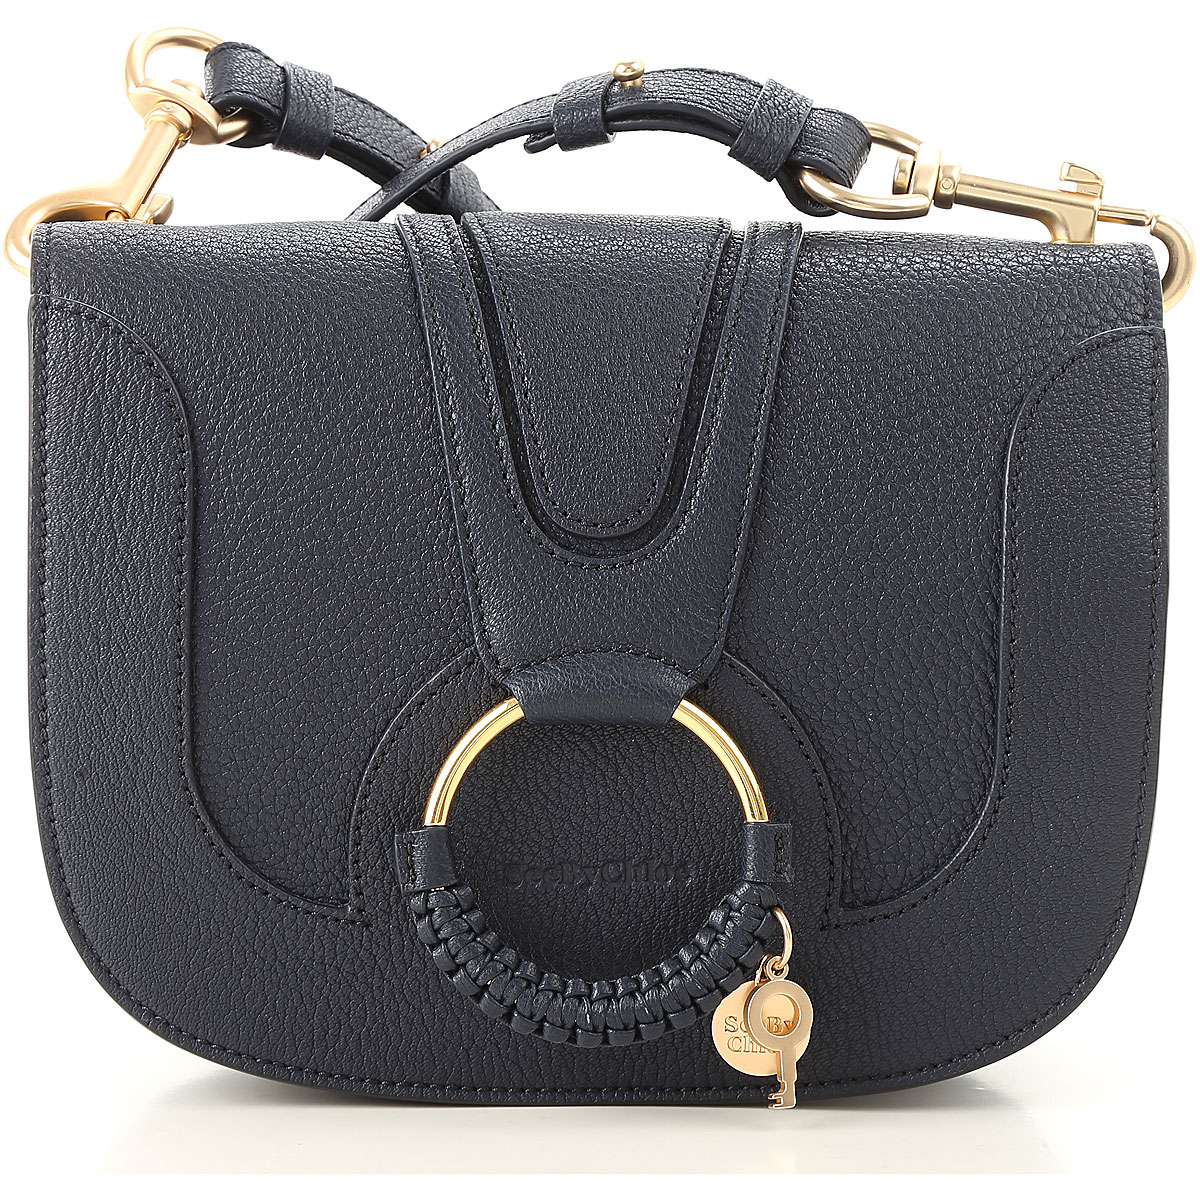 Image of See By Chloe Shoulder Bag for Women, Midnight, Leather, 2017